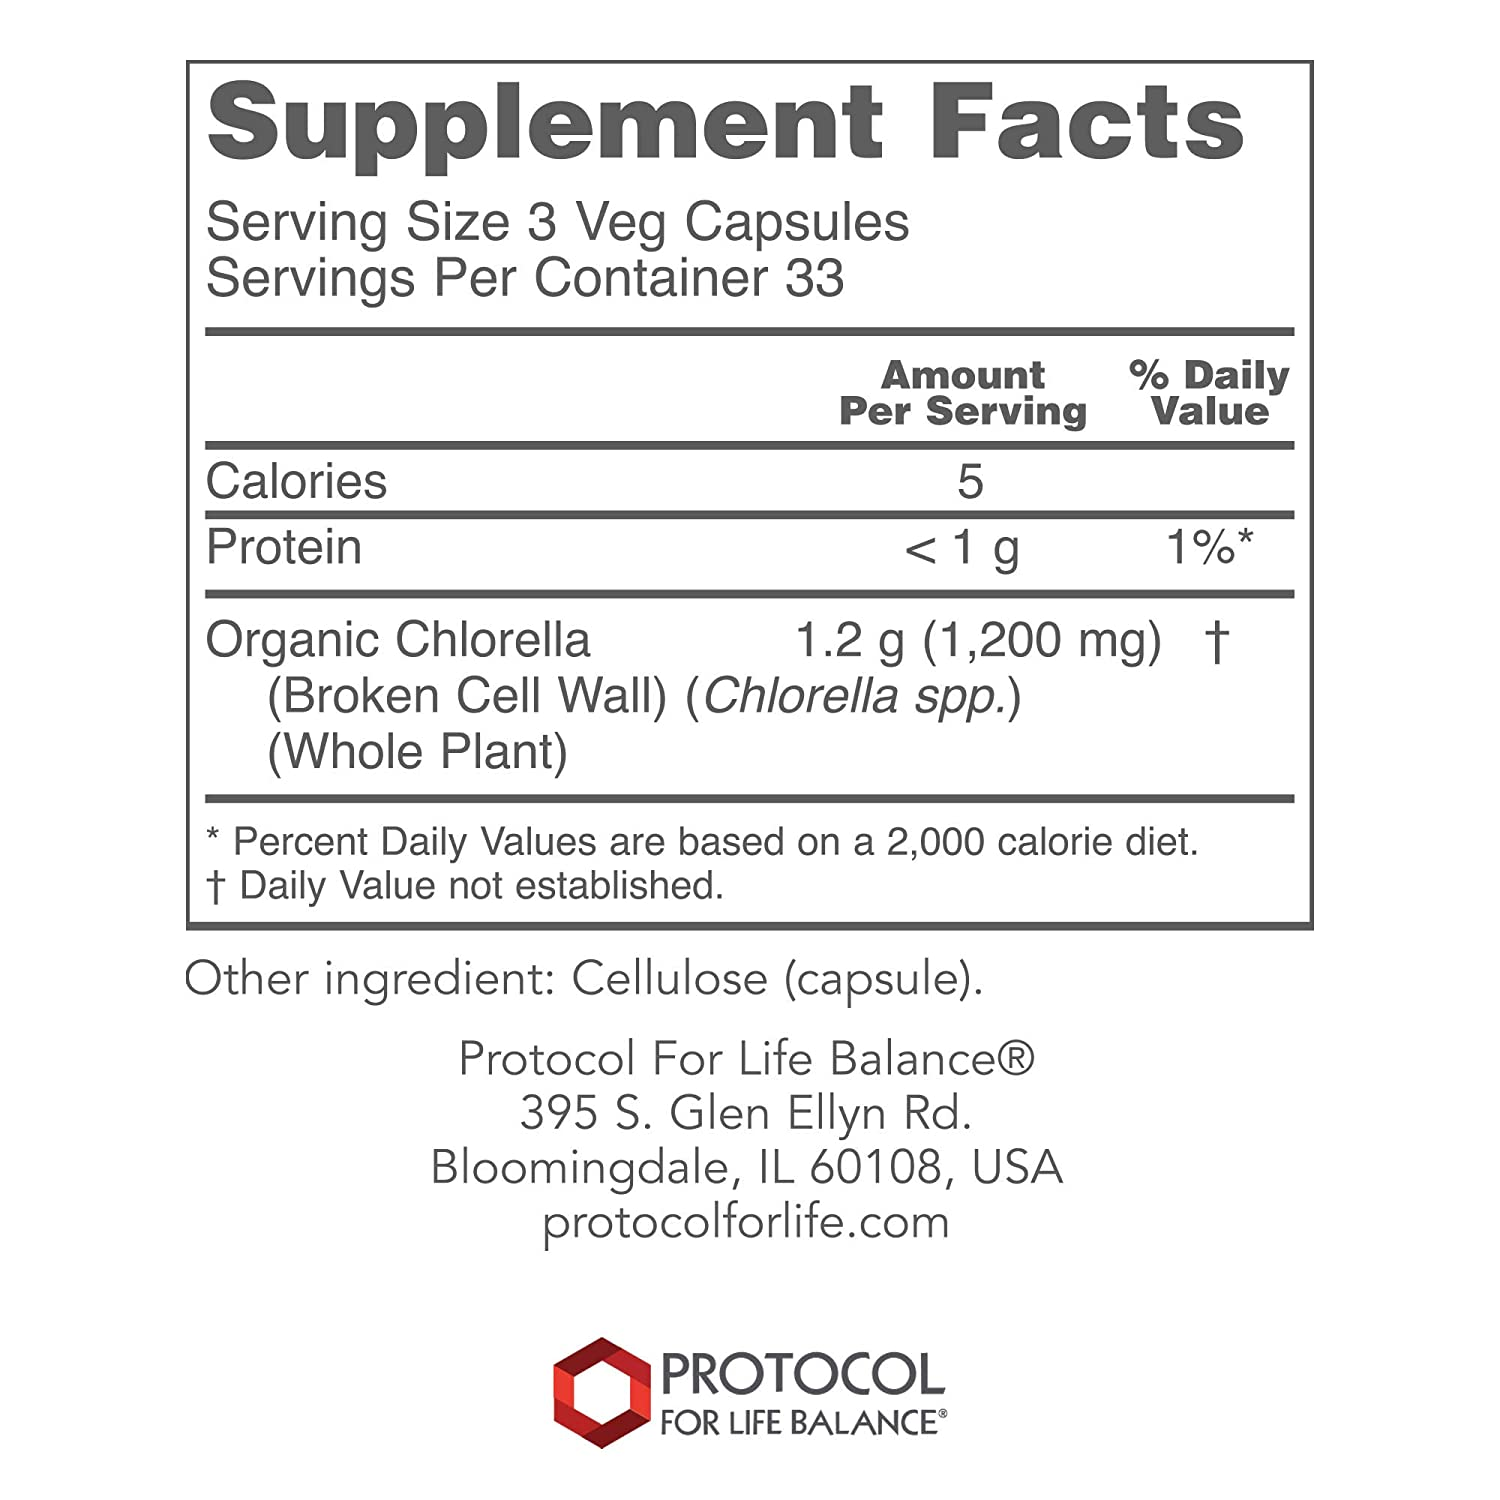 Protocol For Life Balance – Chlorella 400 mg – Natural Antioxidants Rich in Chlorophyll Carotenoids, Supports Healthy Immune System Function, Natural Detox, Healthy Weight Loss – 100 Vcaps